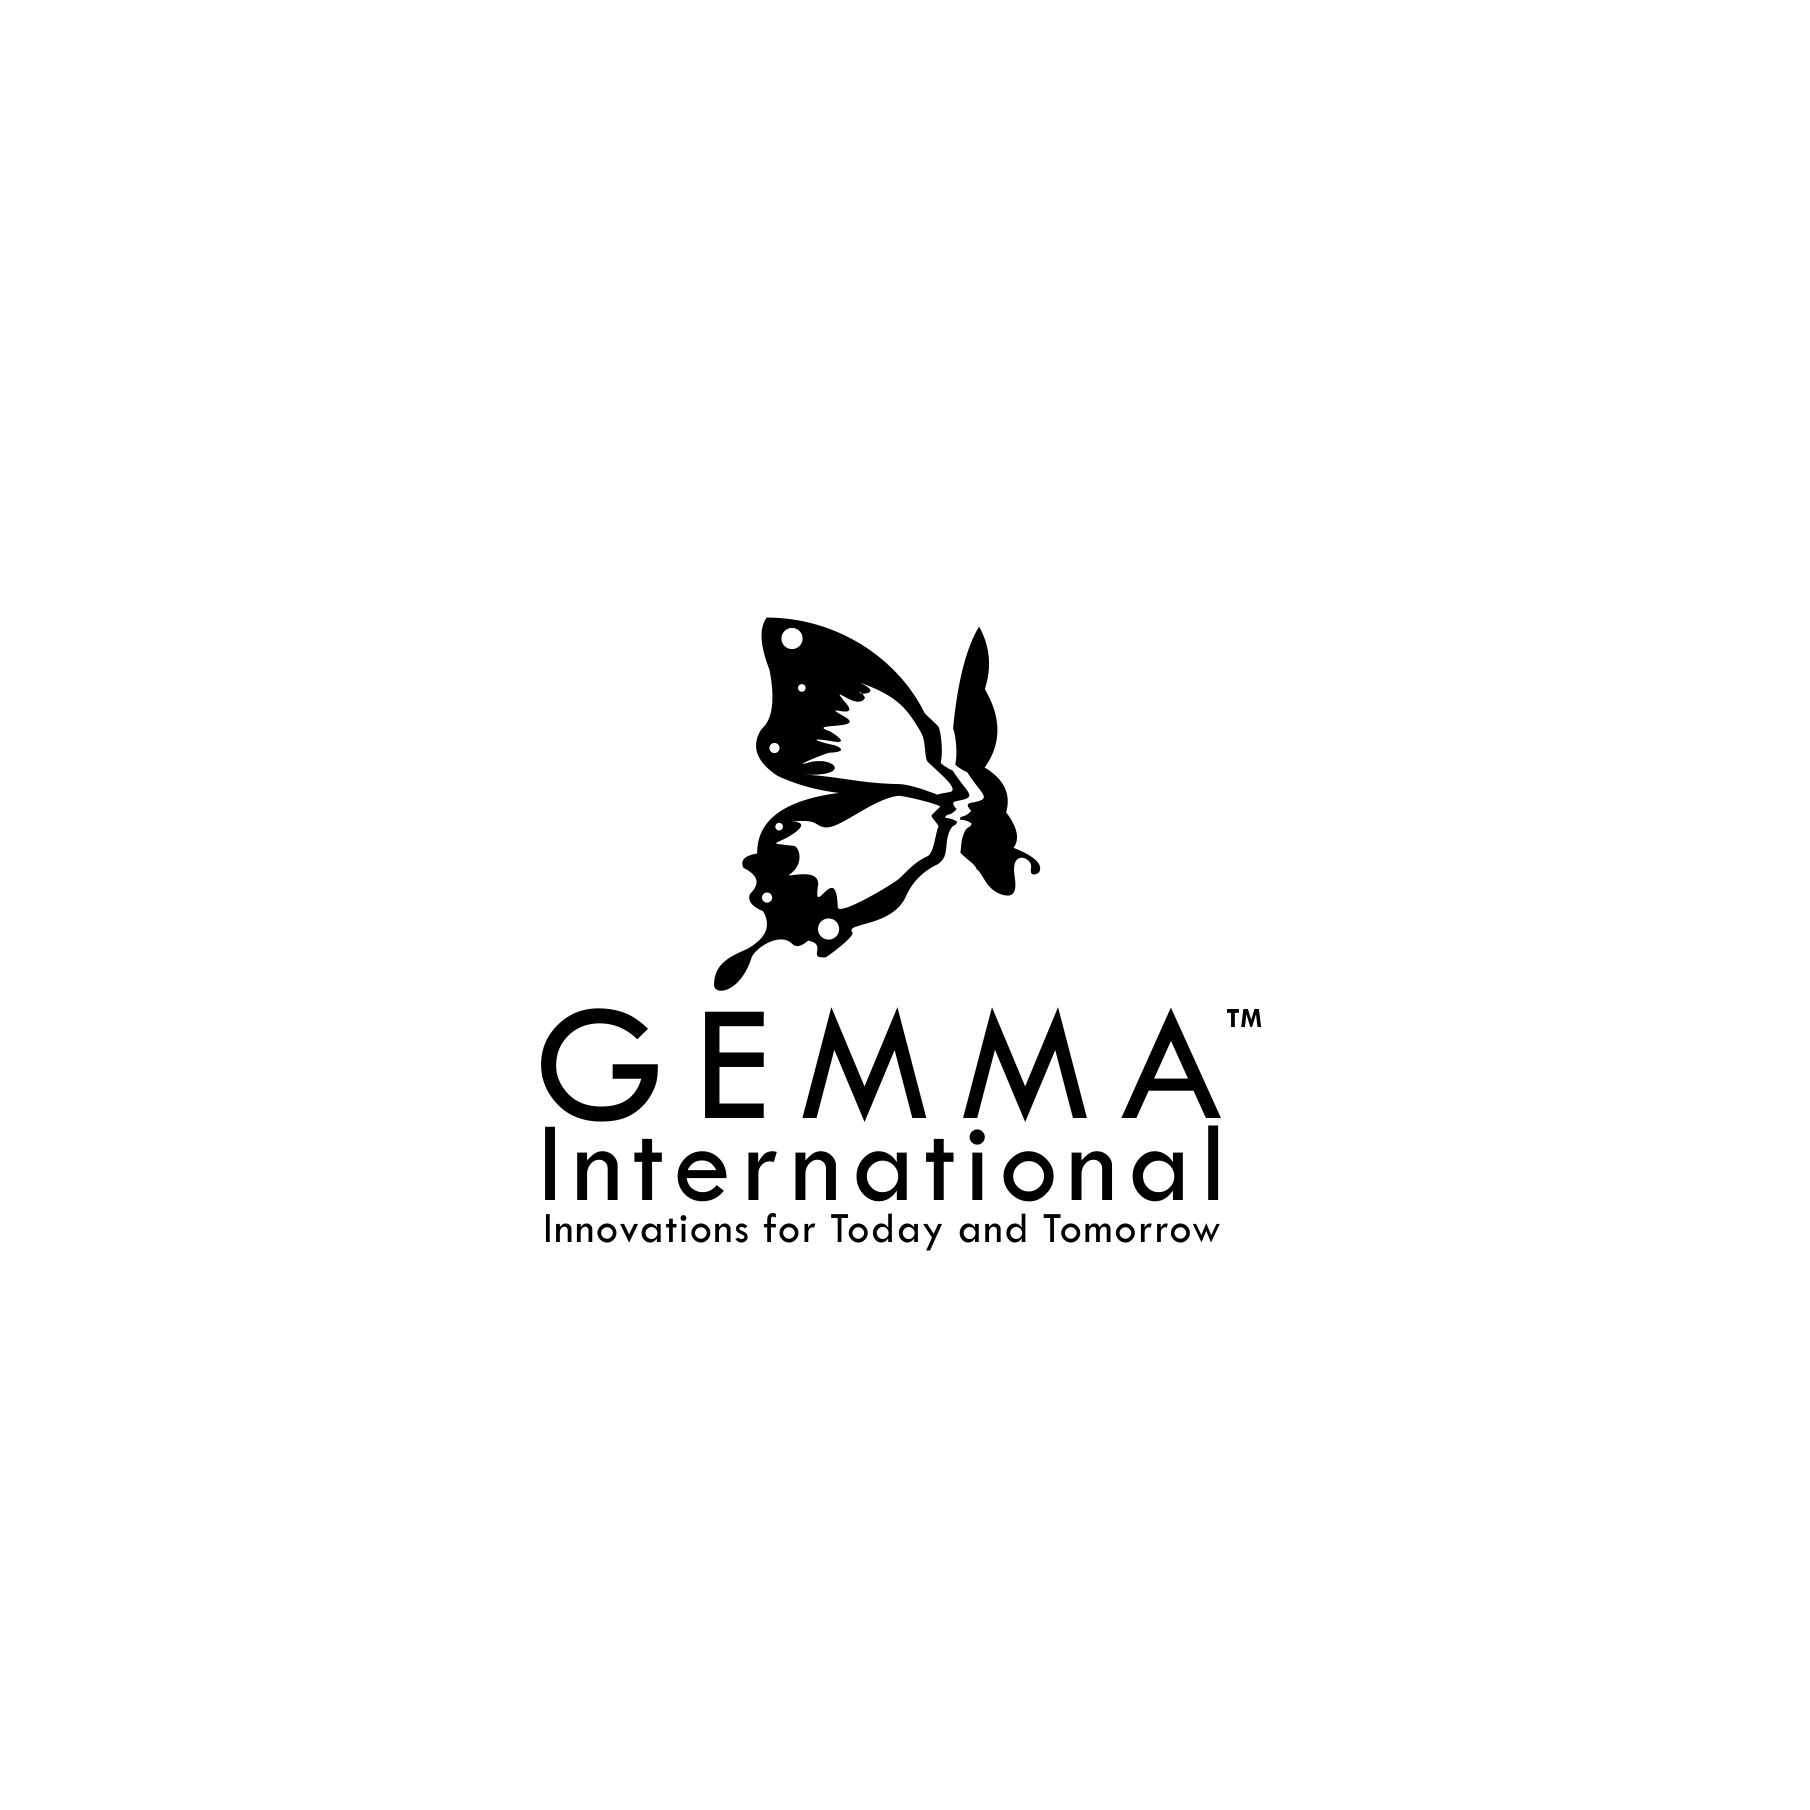 Logo Design by Think - Entry No. 186 in the Logo Design Contest Artistic Logo Design for Gemma International.